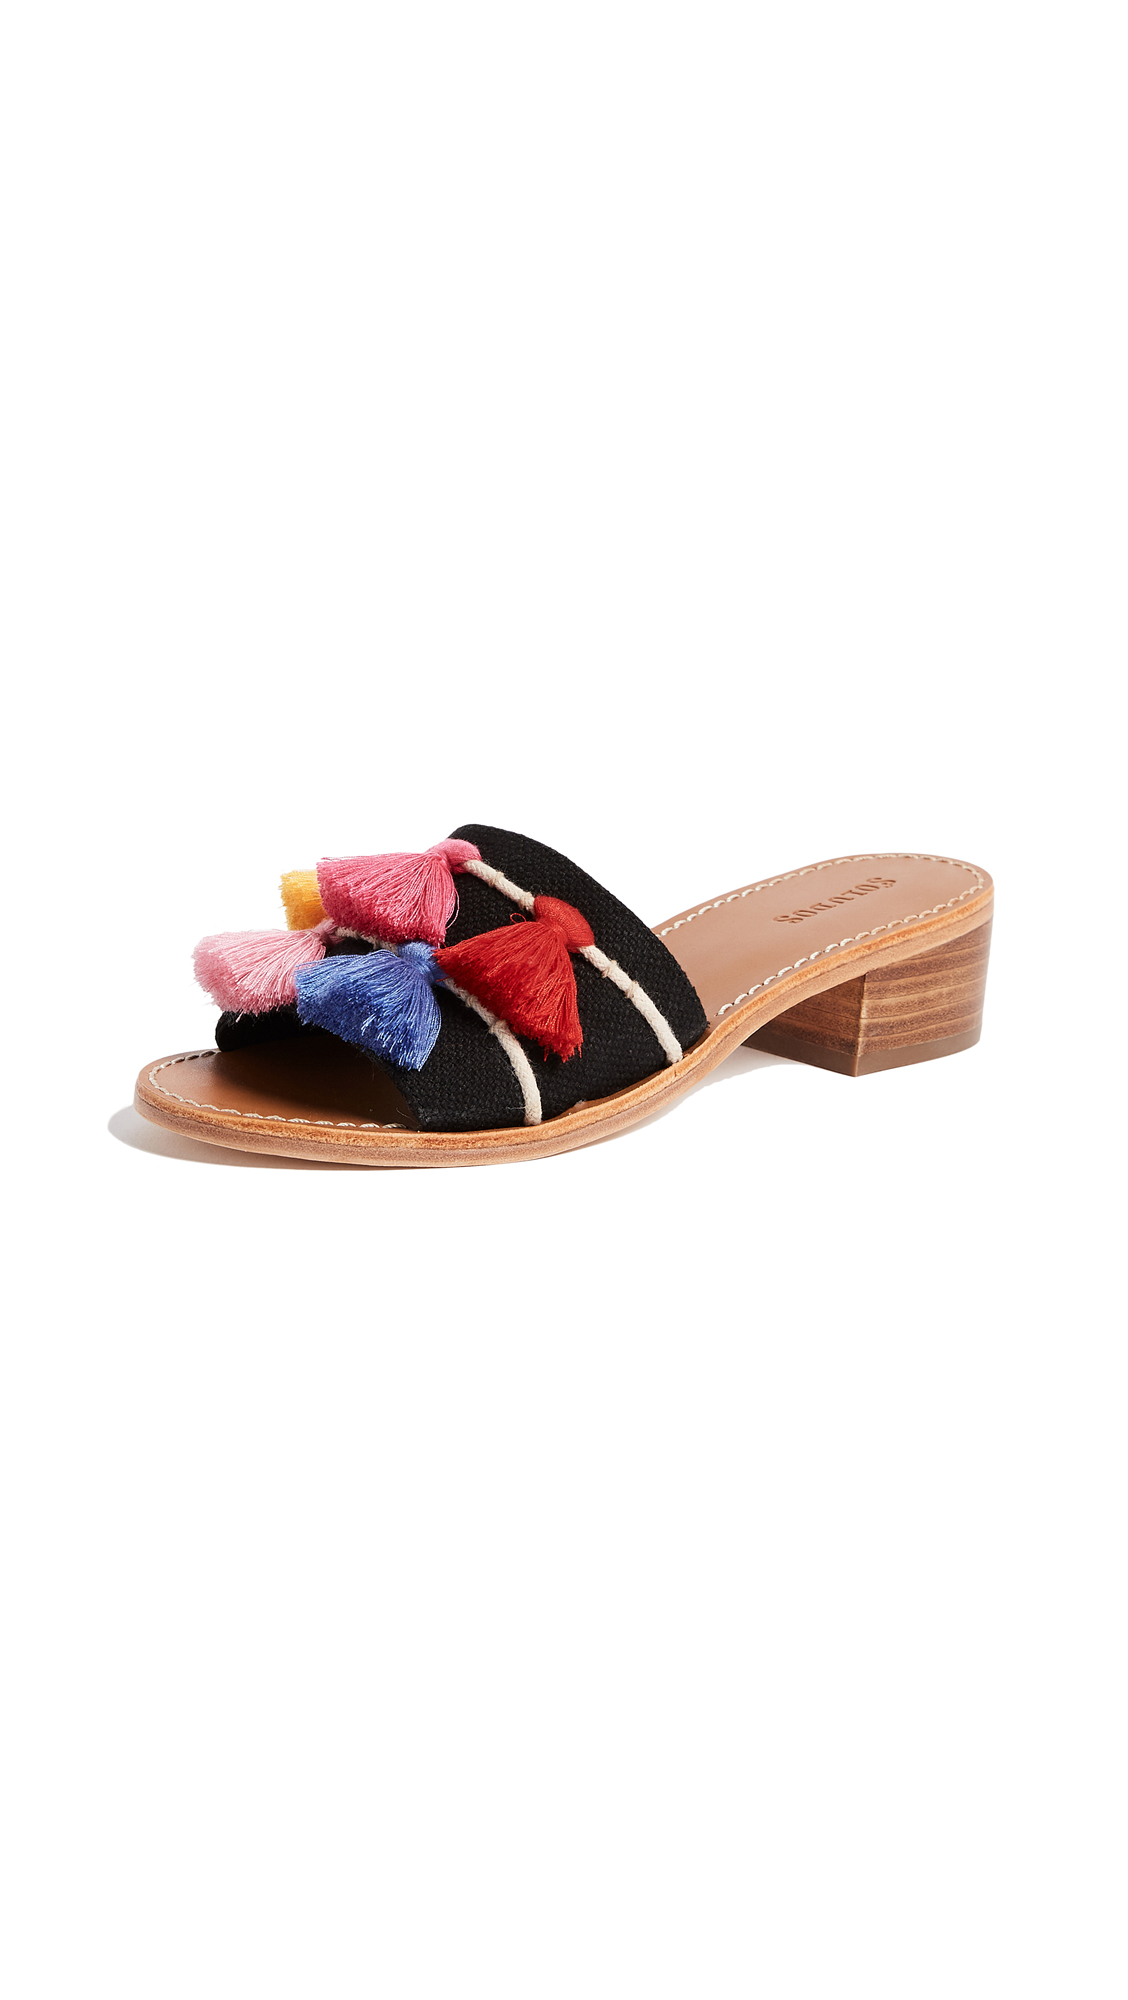 Soludos Tassel City Sandals